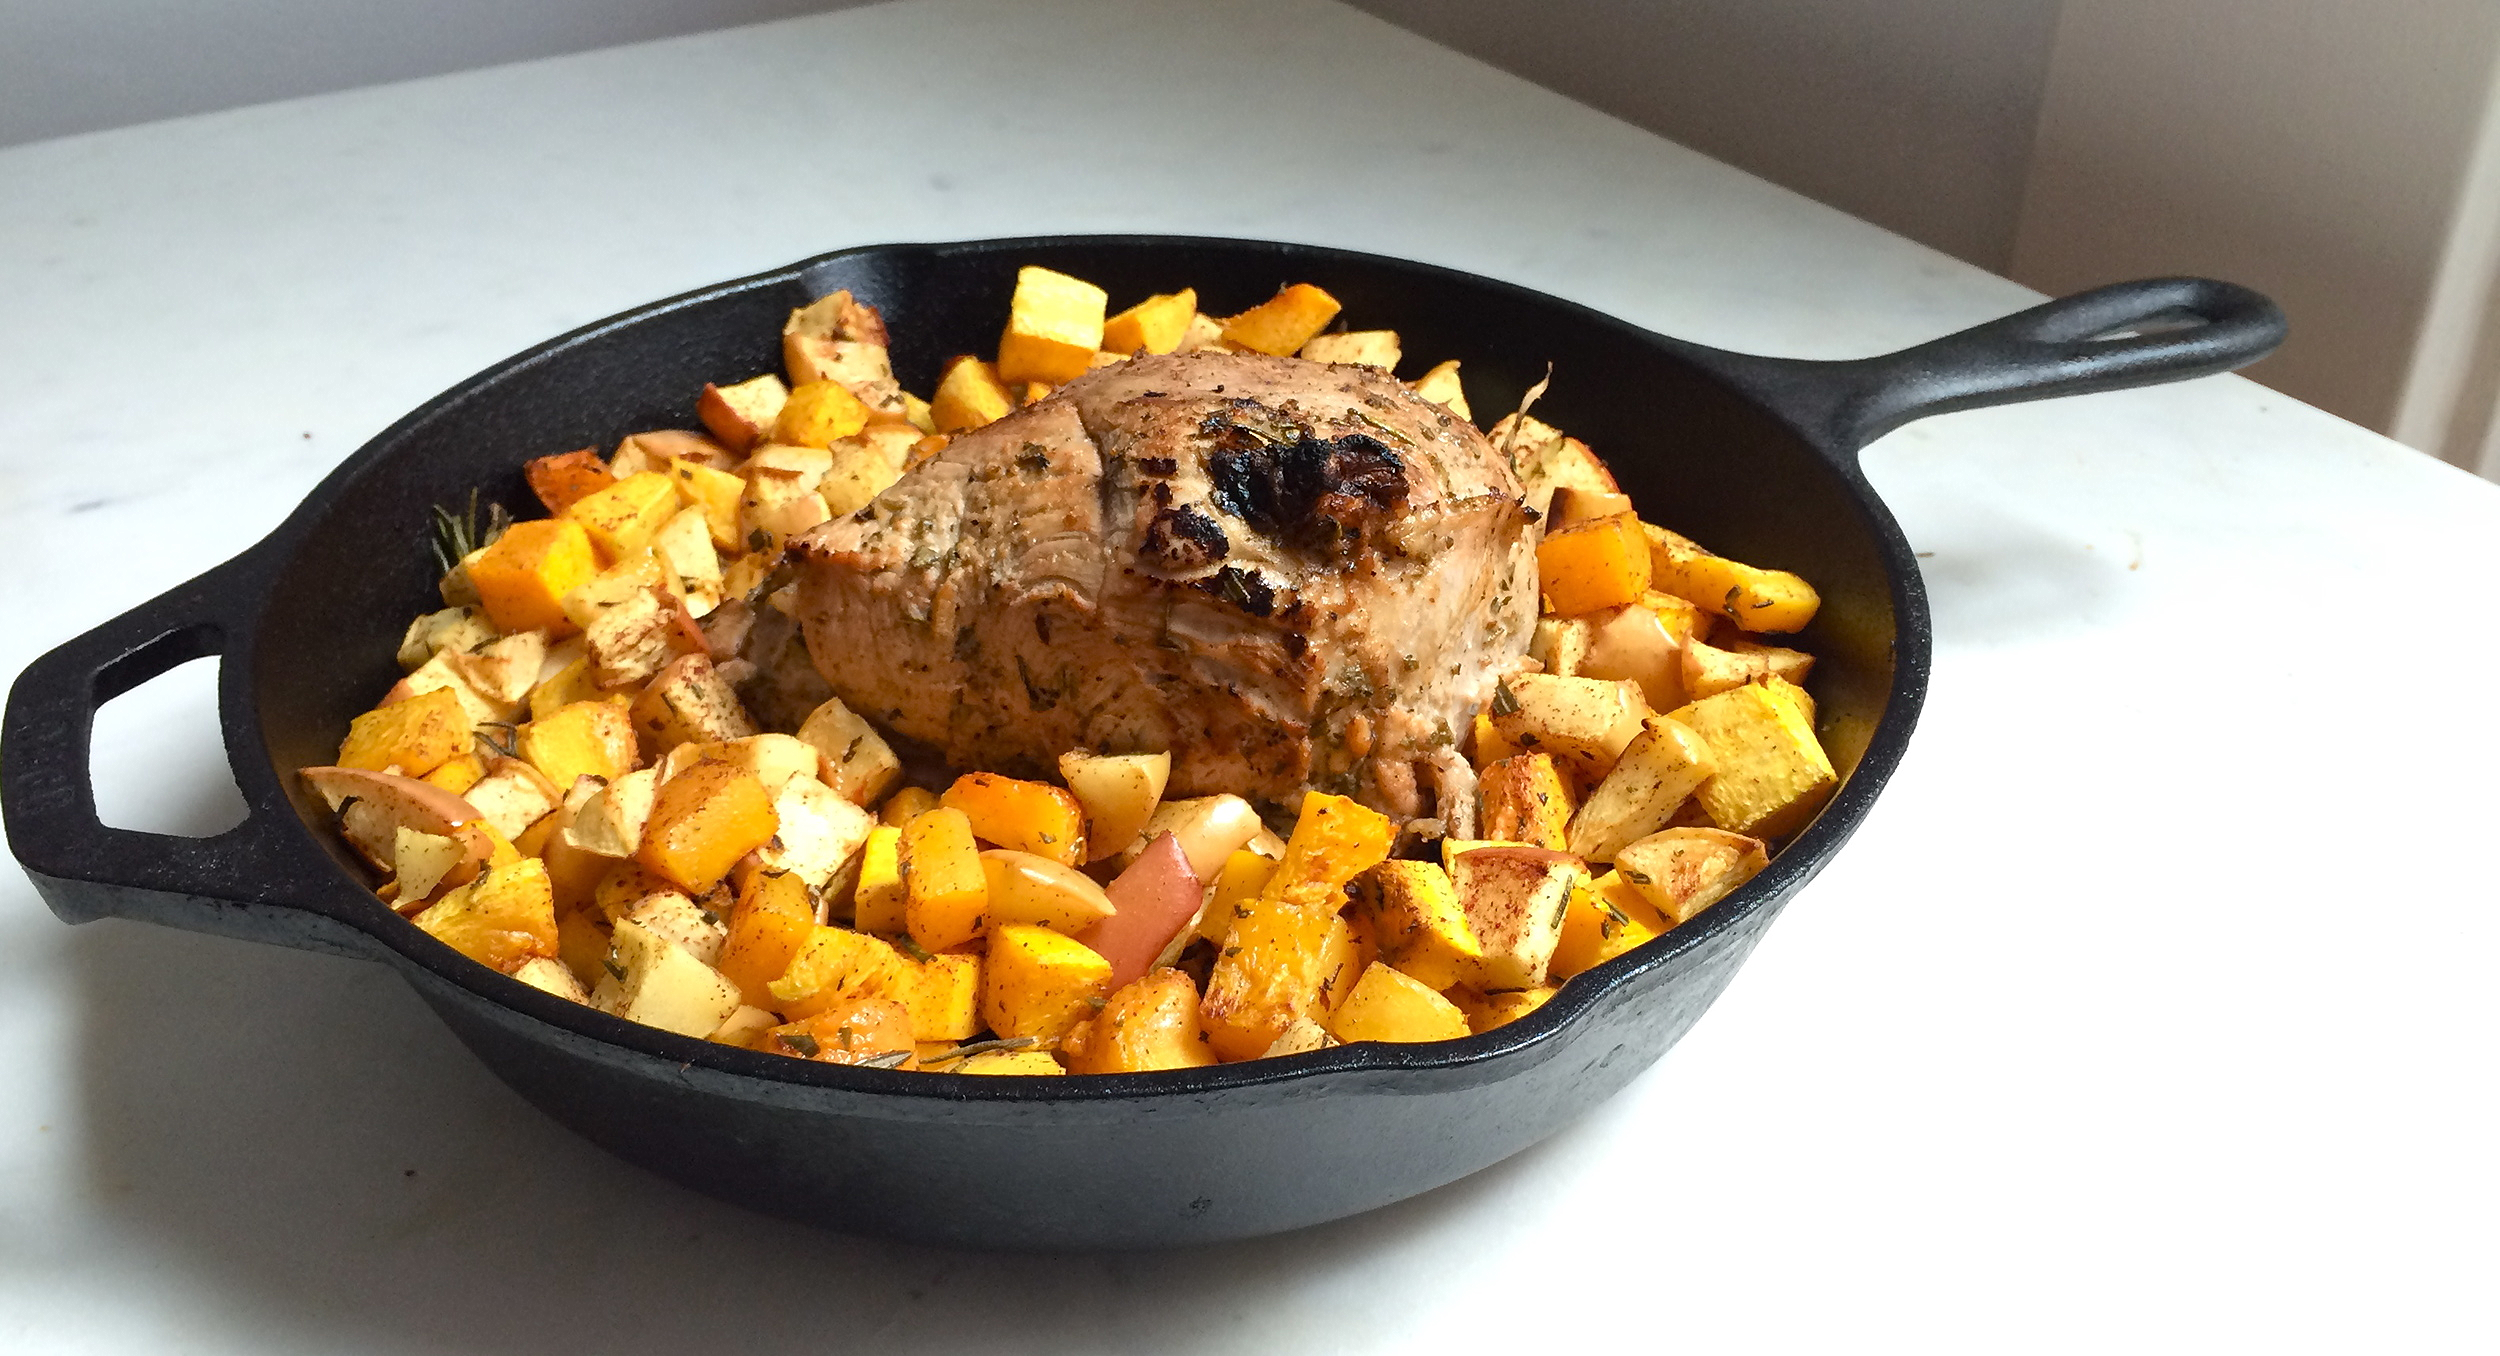 Rosemary Pork Roast with Squash and Apples | My Engineered Nutrition